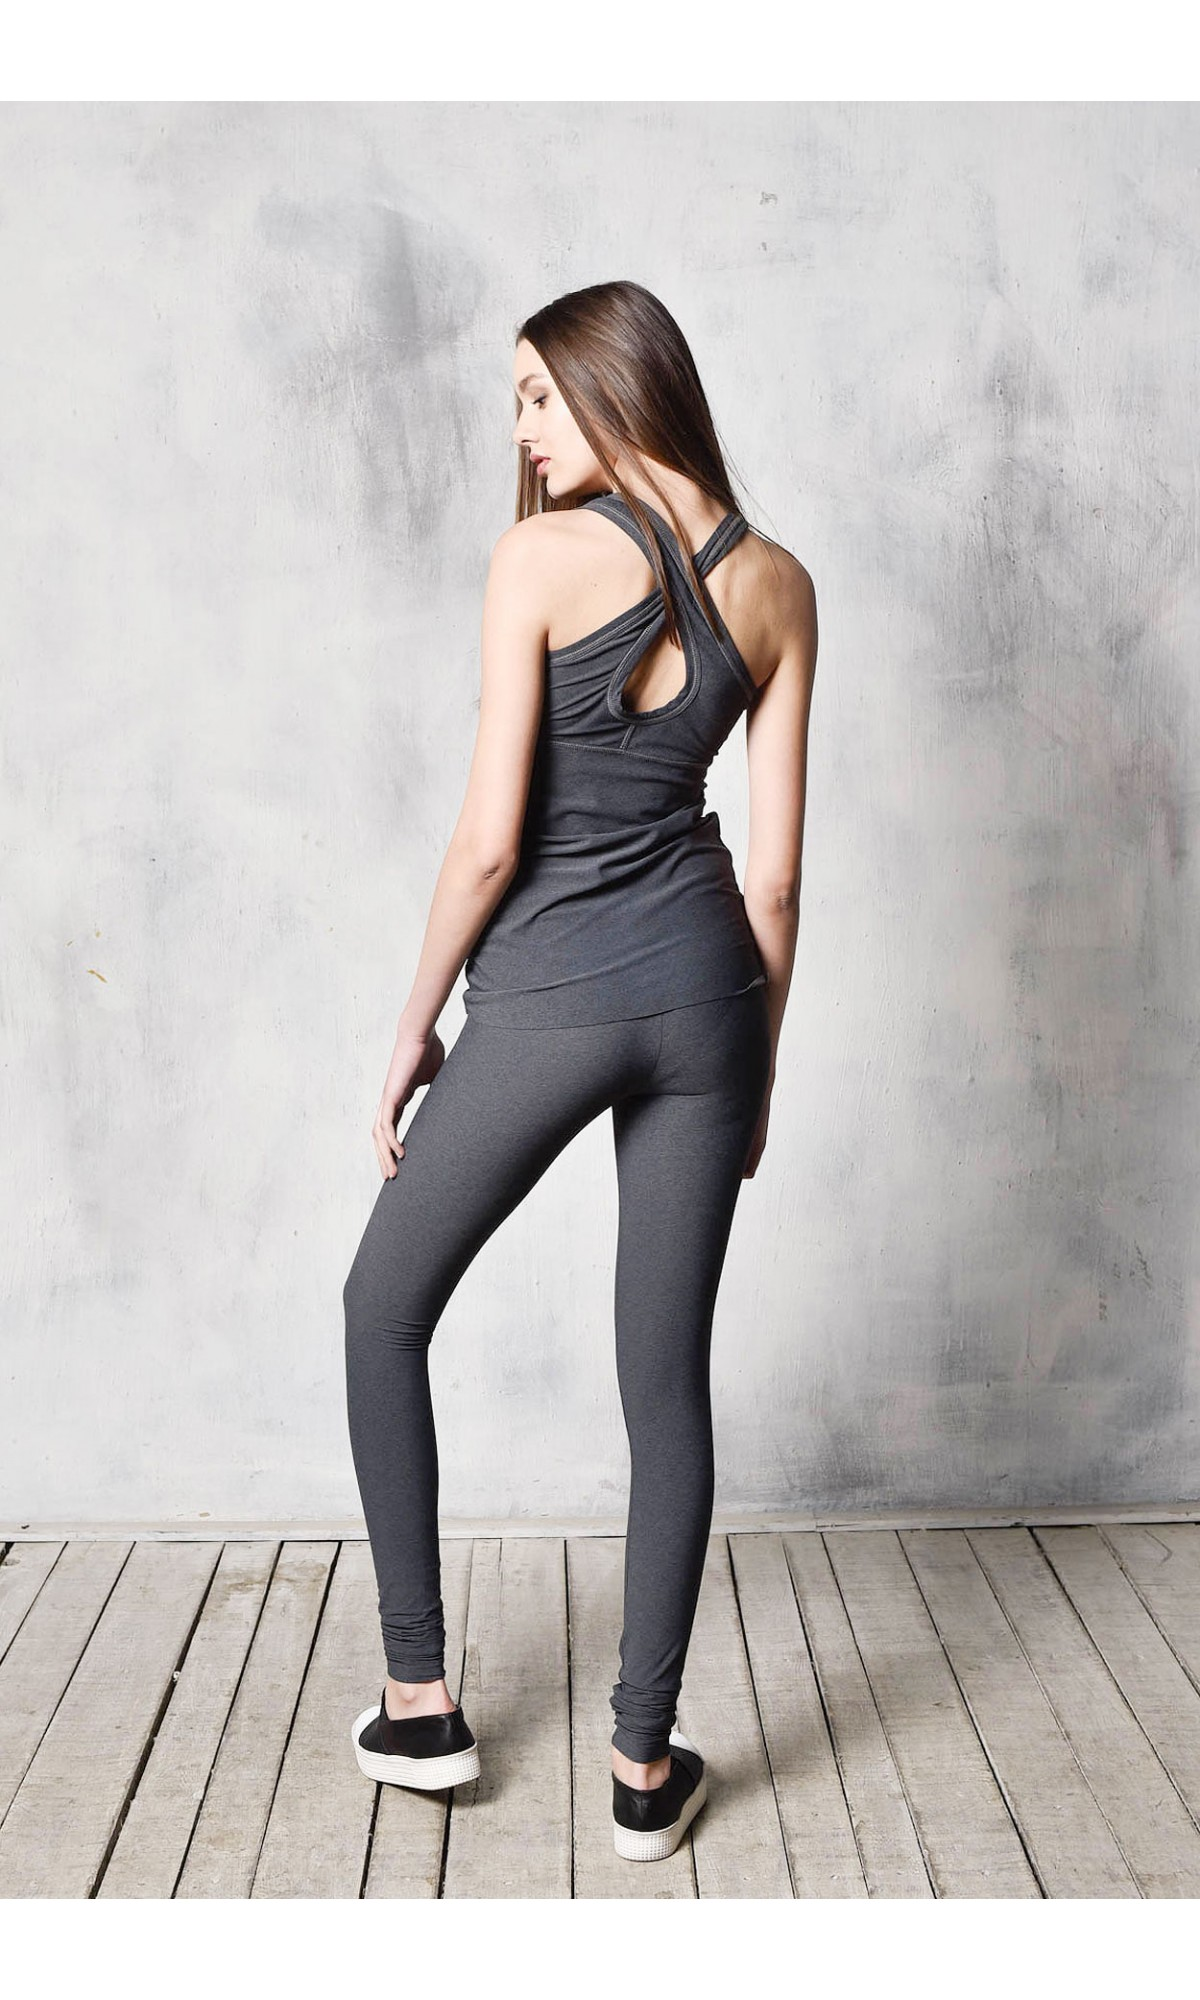 Elegant Sport & Yoga Leggings A90247